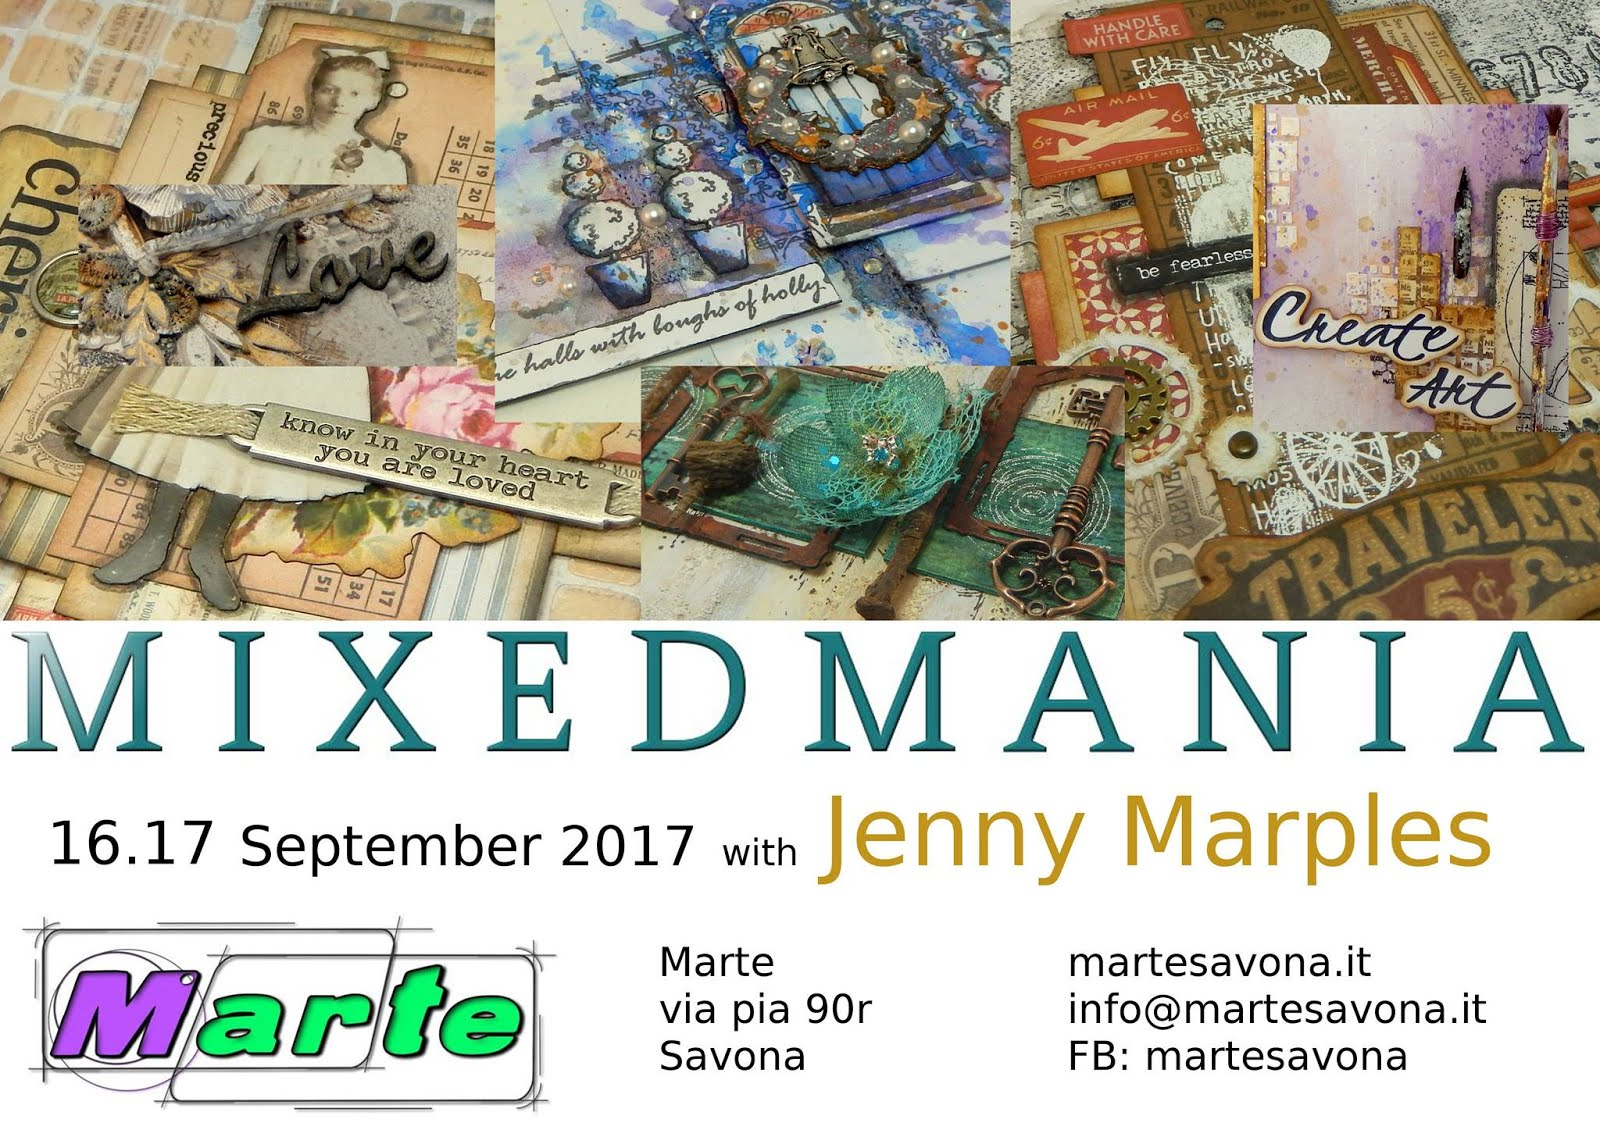 A Weekend of Mixed Media Workshops at Marte Savona, September 2017